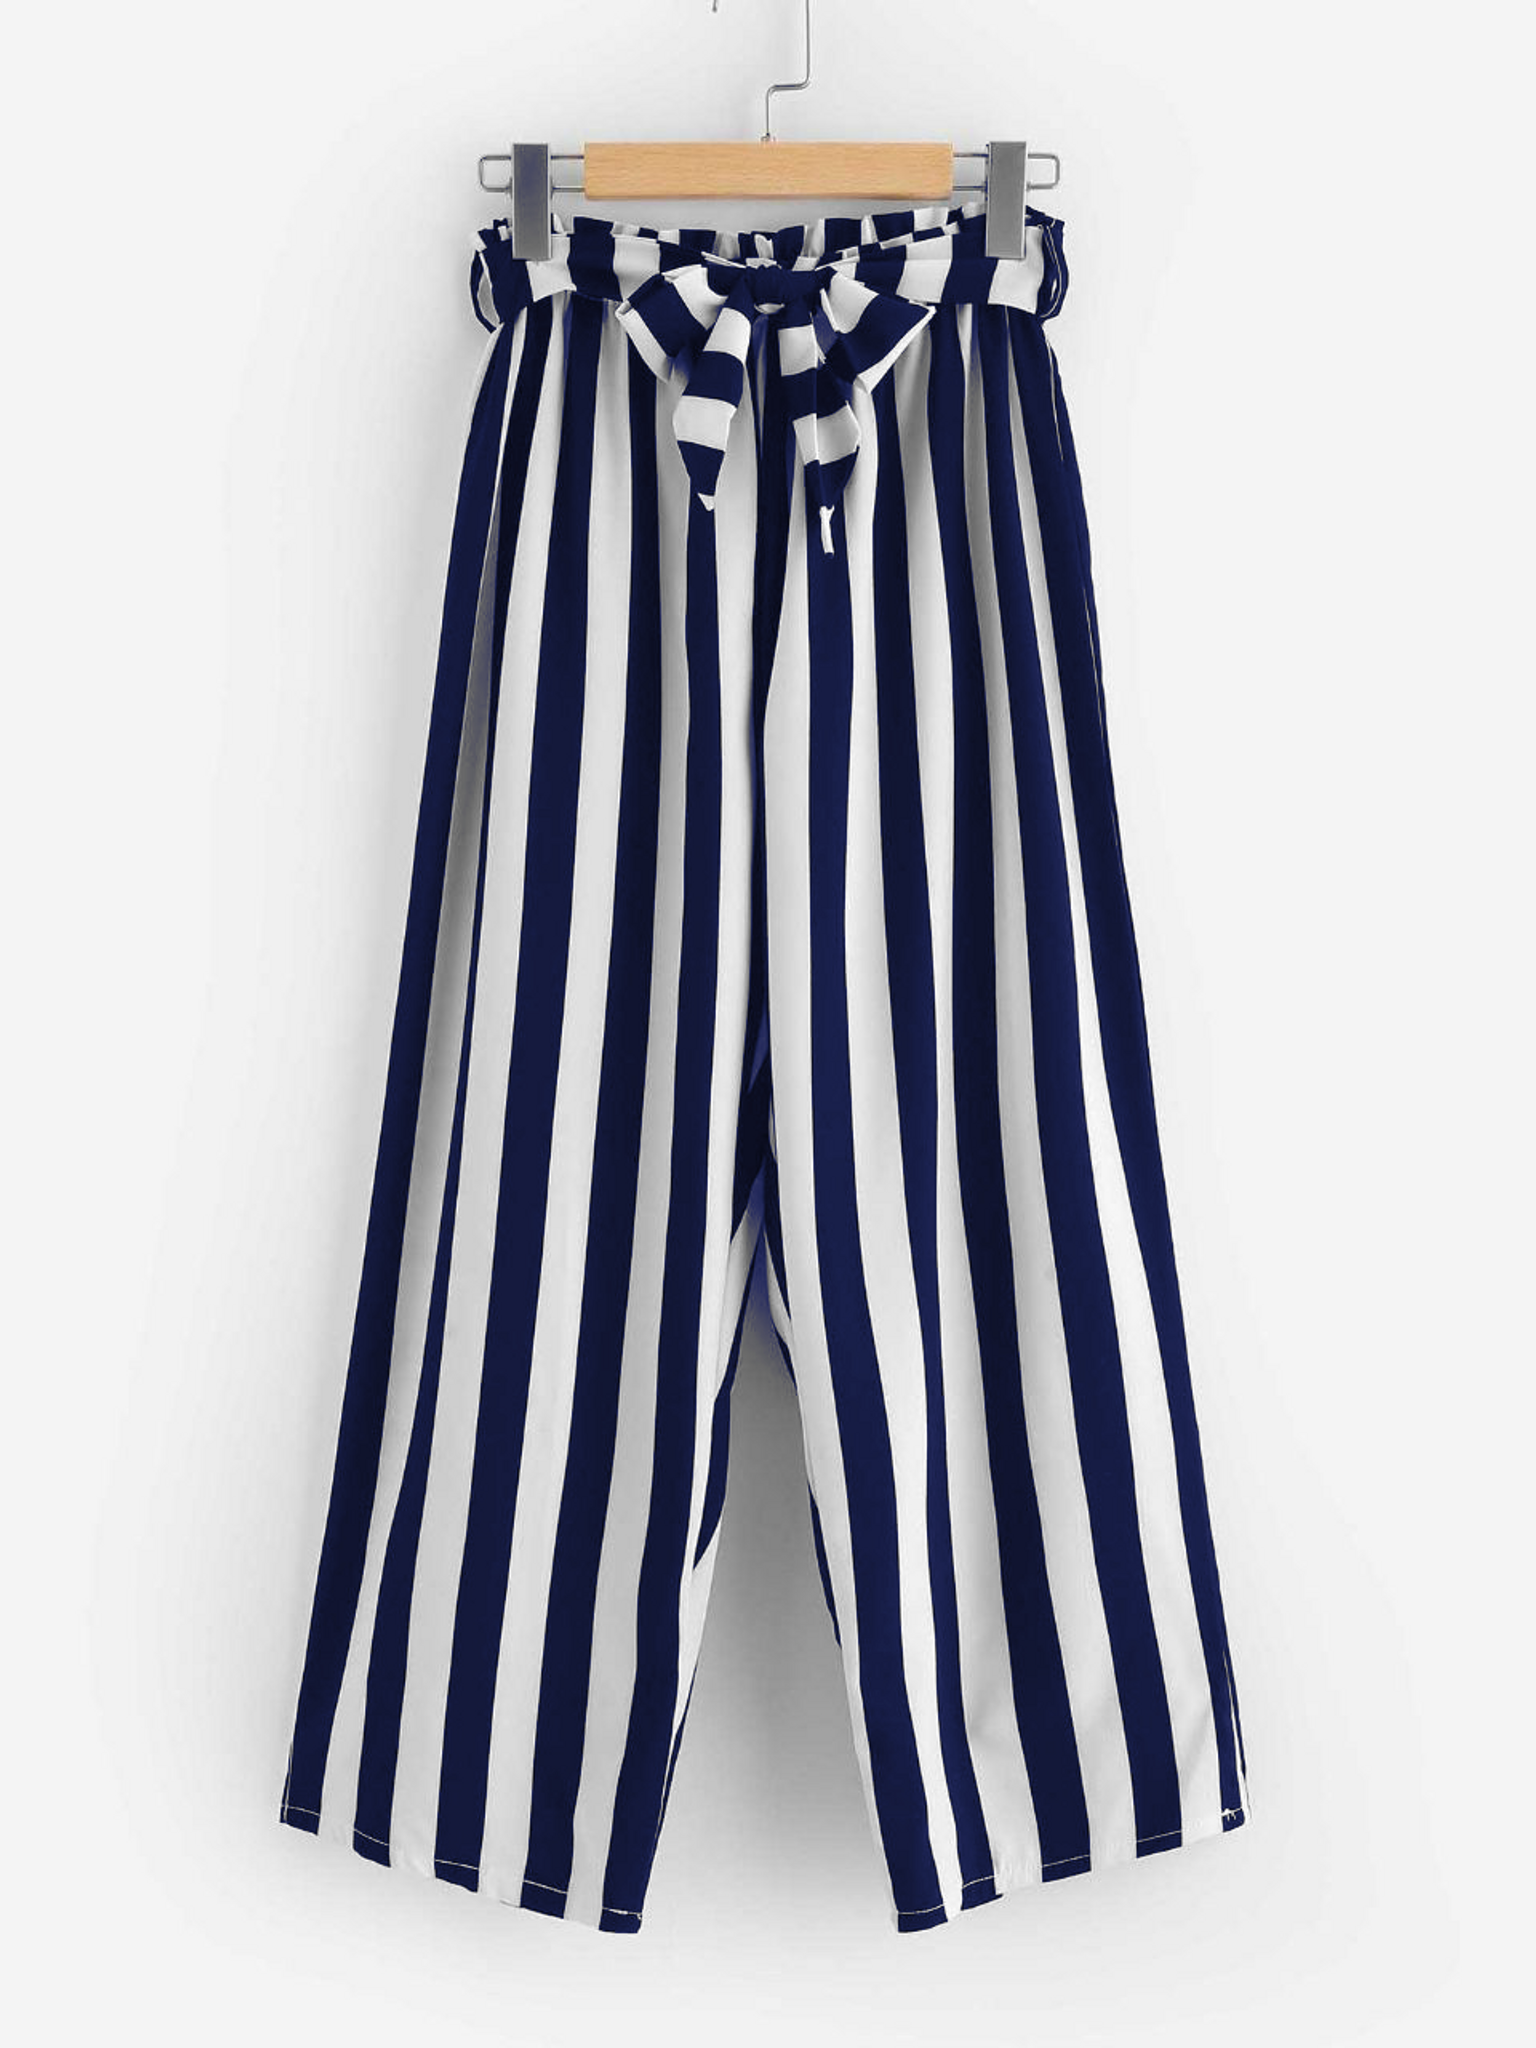 Fifth Avenue Viscose JESSA Stripe Tie-Waist Pants - Navy Blue and White